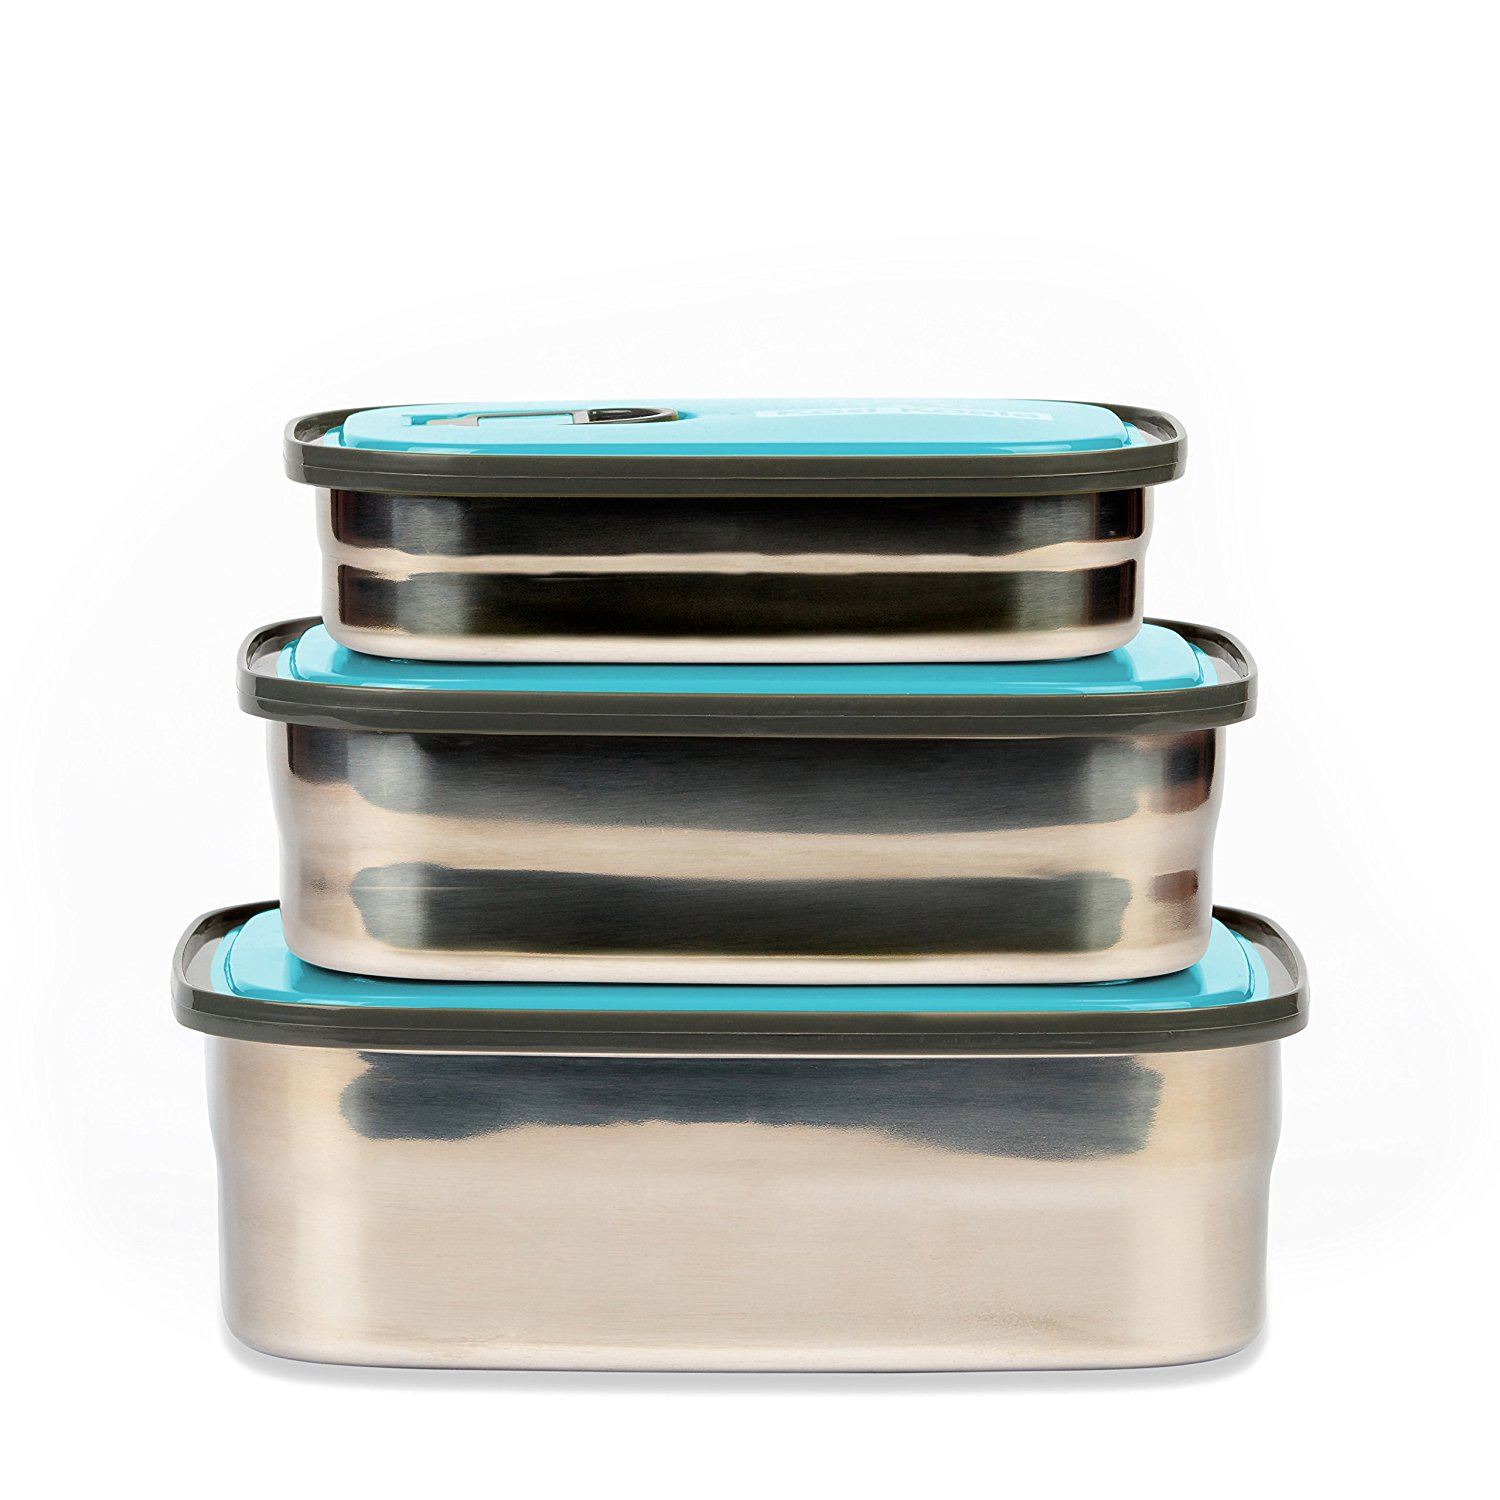 bento lunch box stainless steel food containers blue set of 3 best offer reviews. Black Bedroom Furniture Sets. Home Design Ideas